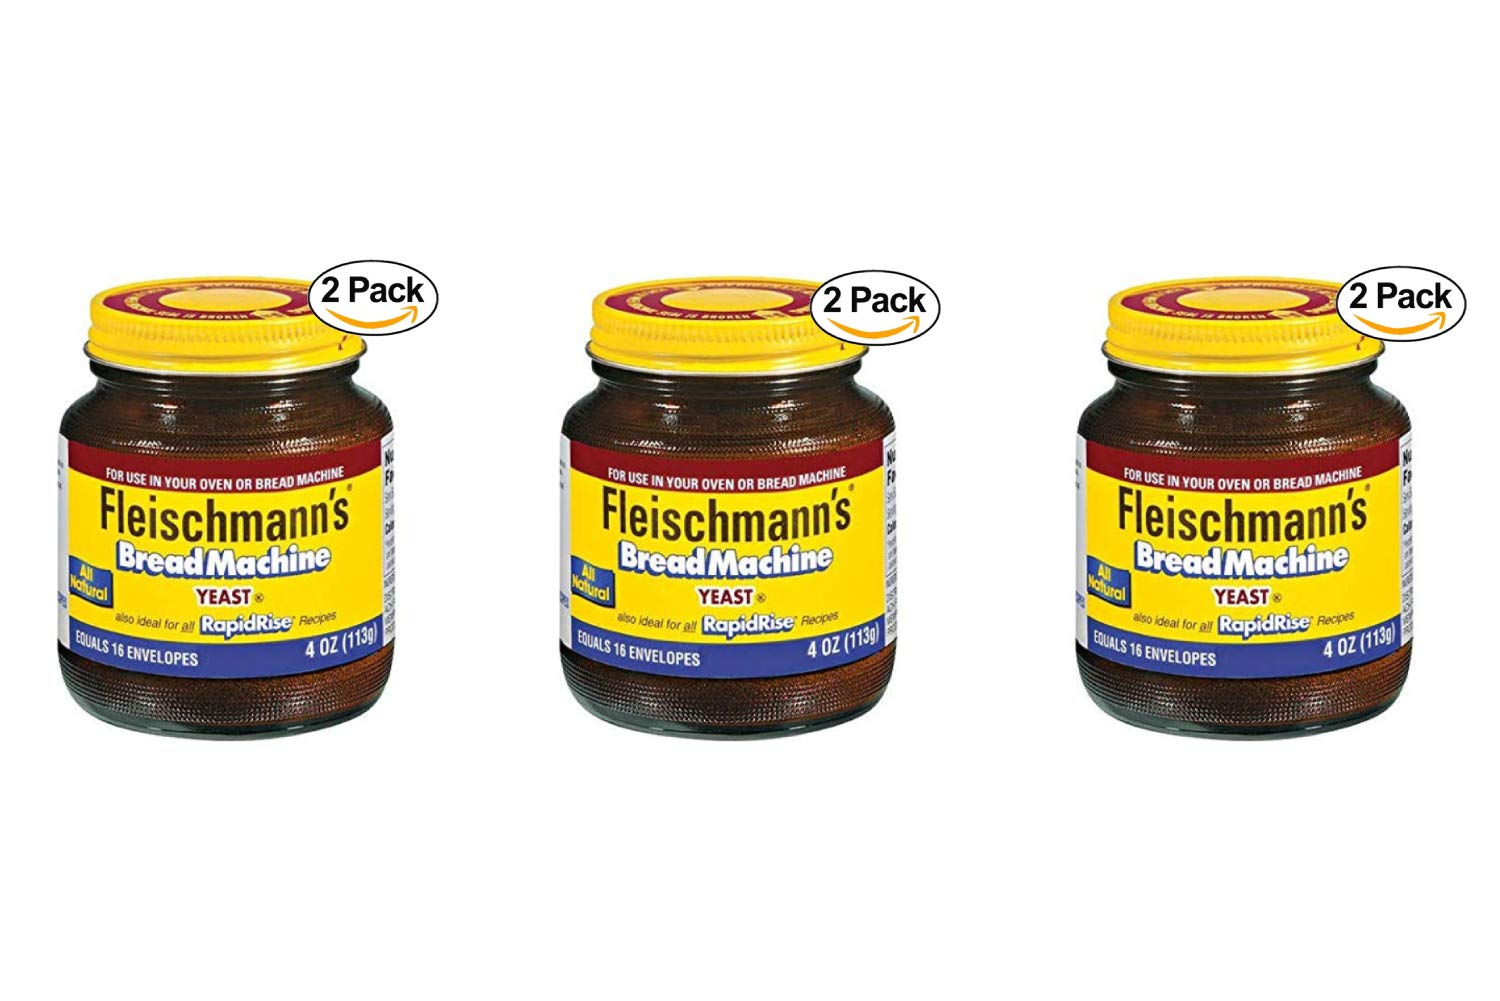 Fleischmann's Bread Machine Yeast, Also Ideal for All Rapid Rise Recipes, Equals 16 Envelopes, 113 Grams Jar (Pack of 2) (3 Pack) by ACH FOOD COMPANIES INC (Image #1)